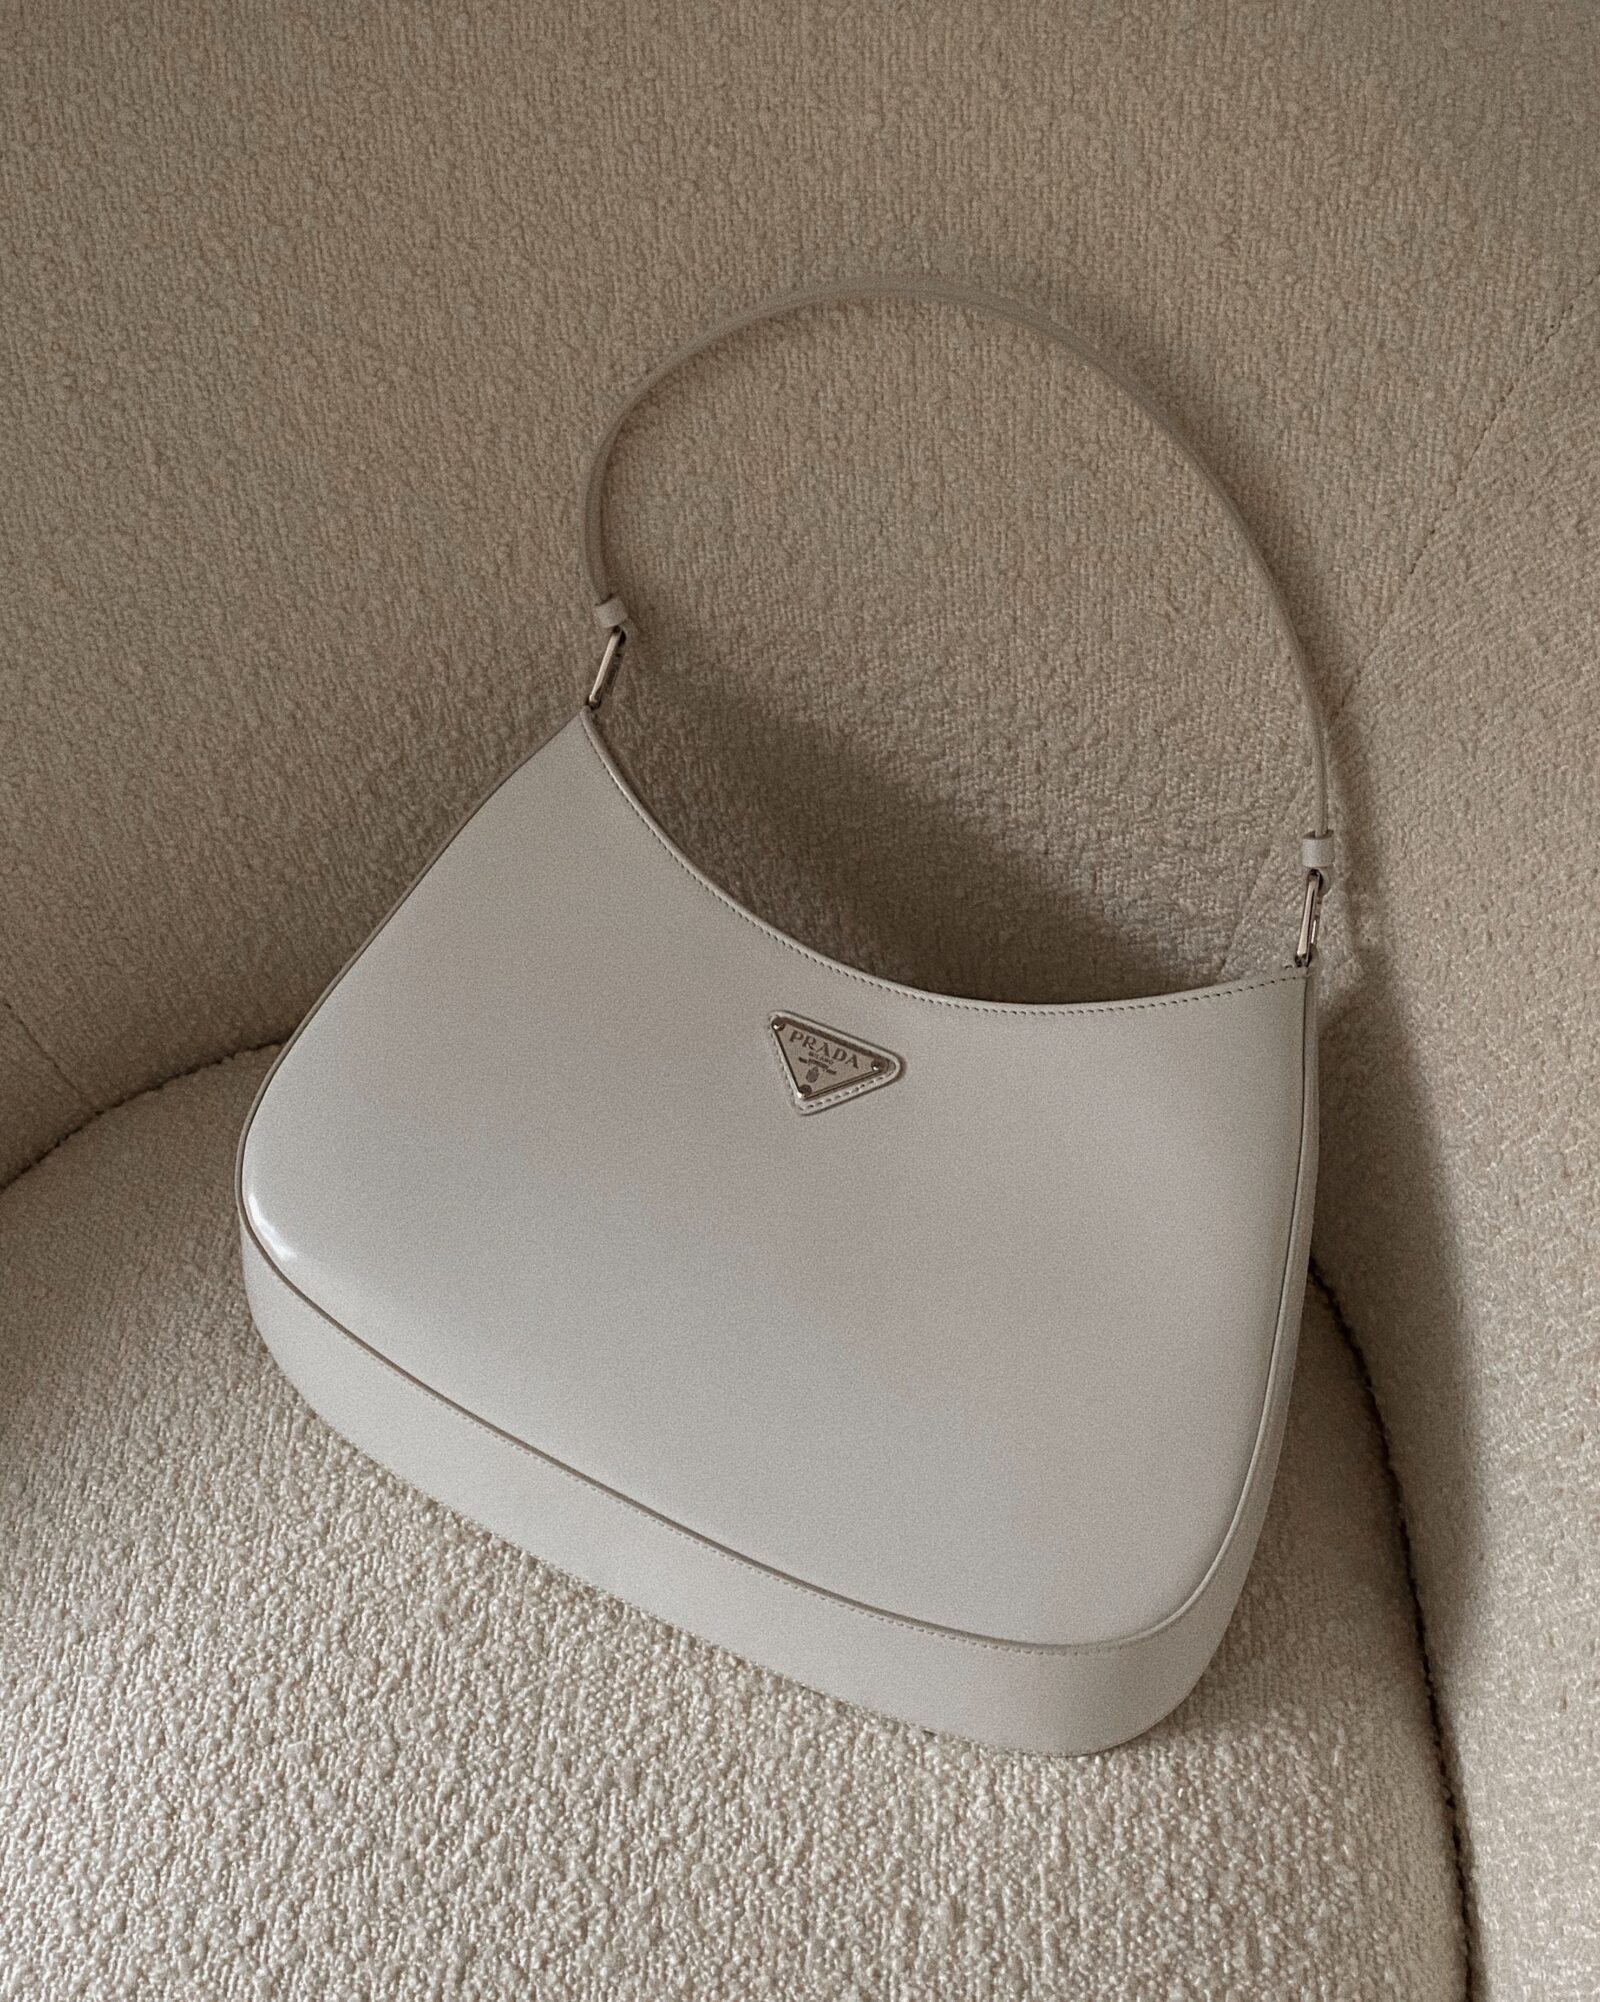 Prada Cleo White Bag